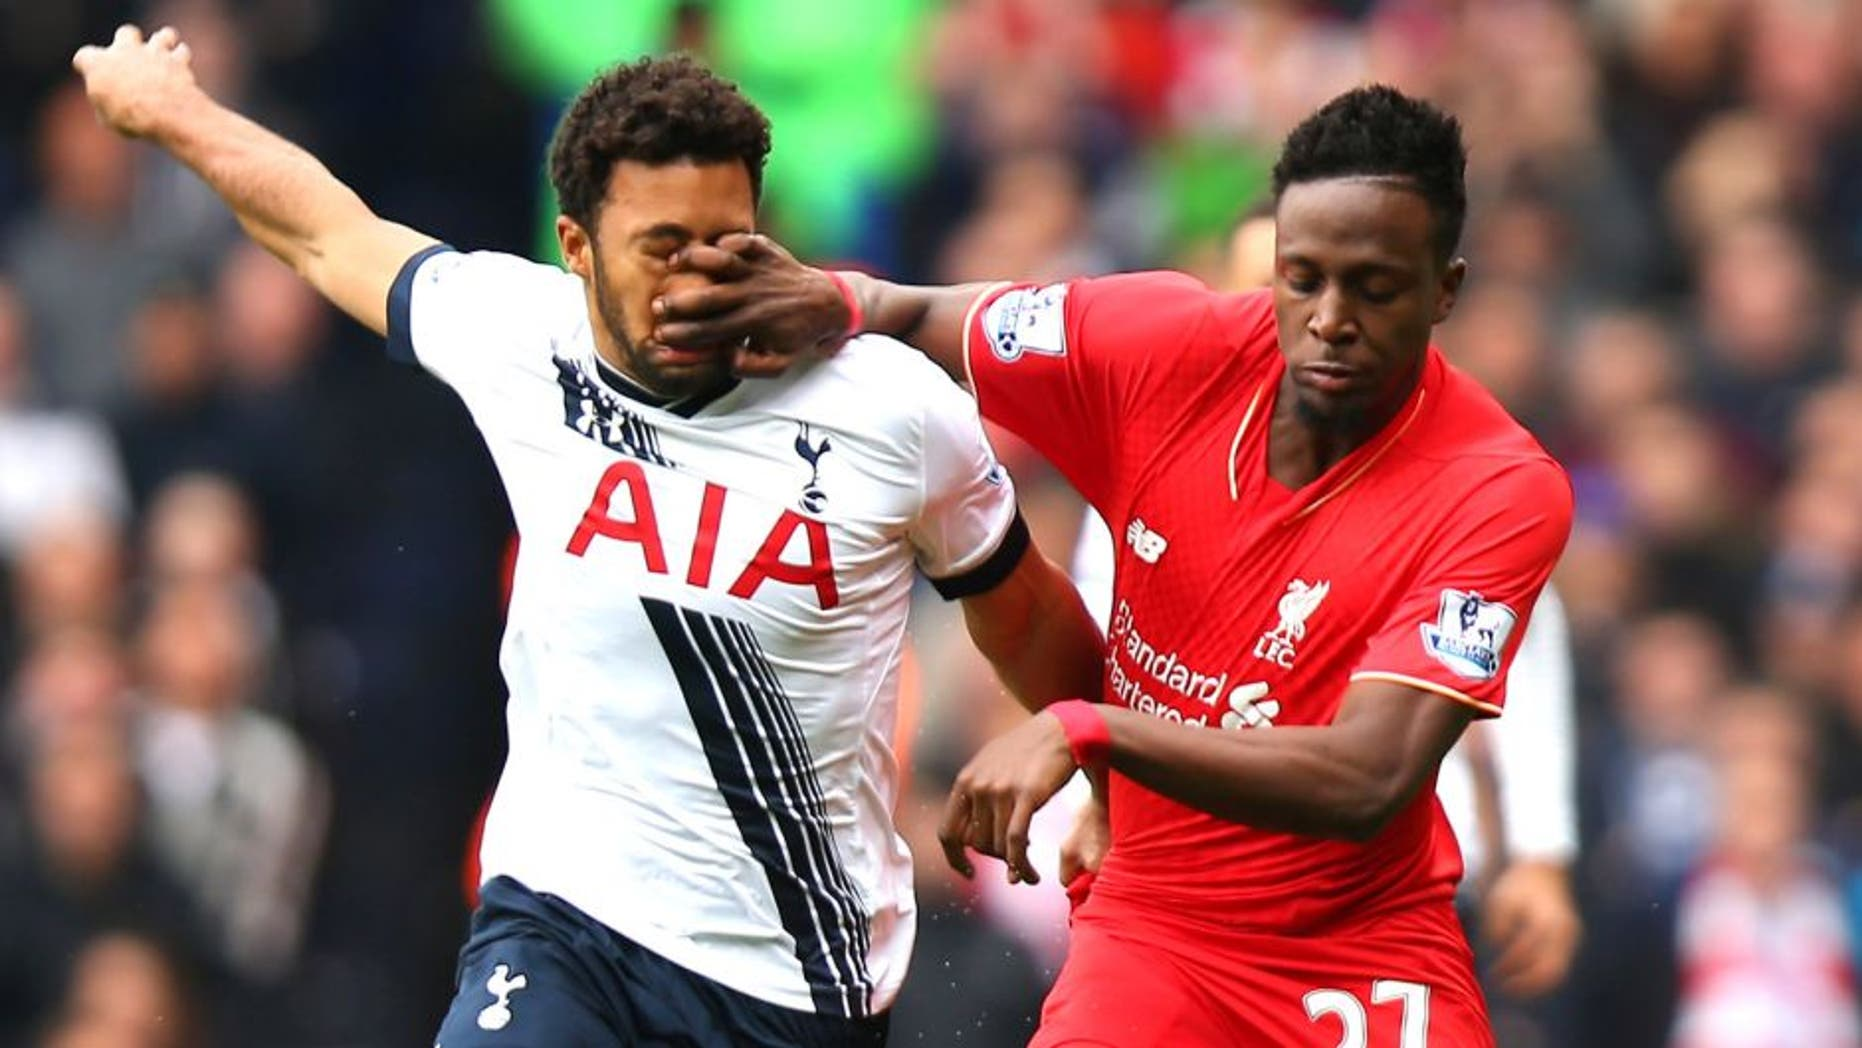 LONDON, ENGLAND - OCTOBER 17: Divock Origi of Liverpool and Mousa Dembele of Tottenham Hotspur compete for the ball during the Barclays Premier League match between Tottenham Hotspur and Liverpool at White Hart Lane on October 17, 2015 in London, England. (Photo by Bryn Lennon/Getty Images)